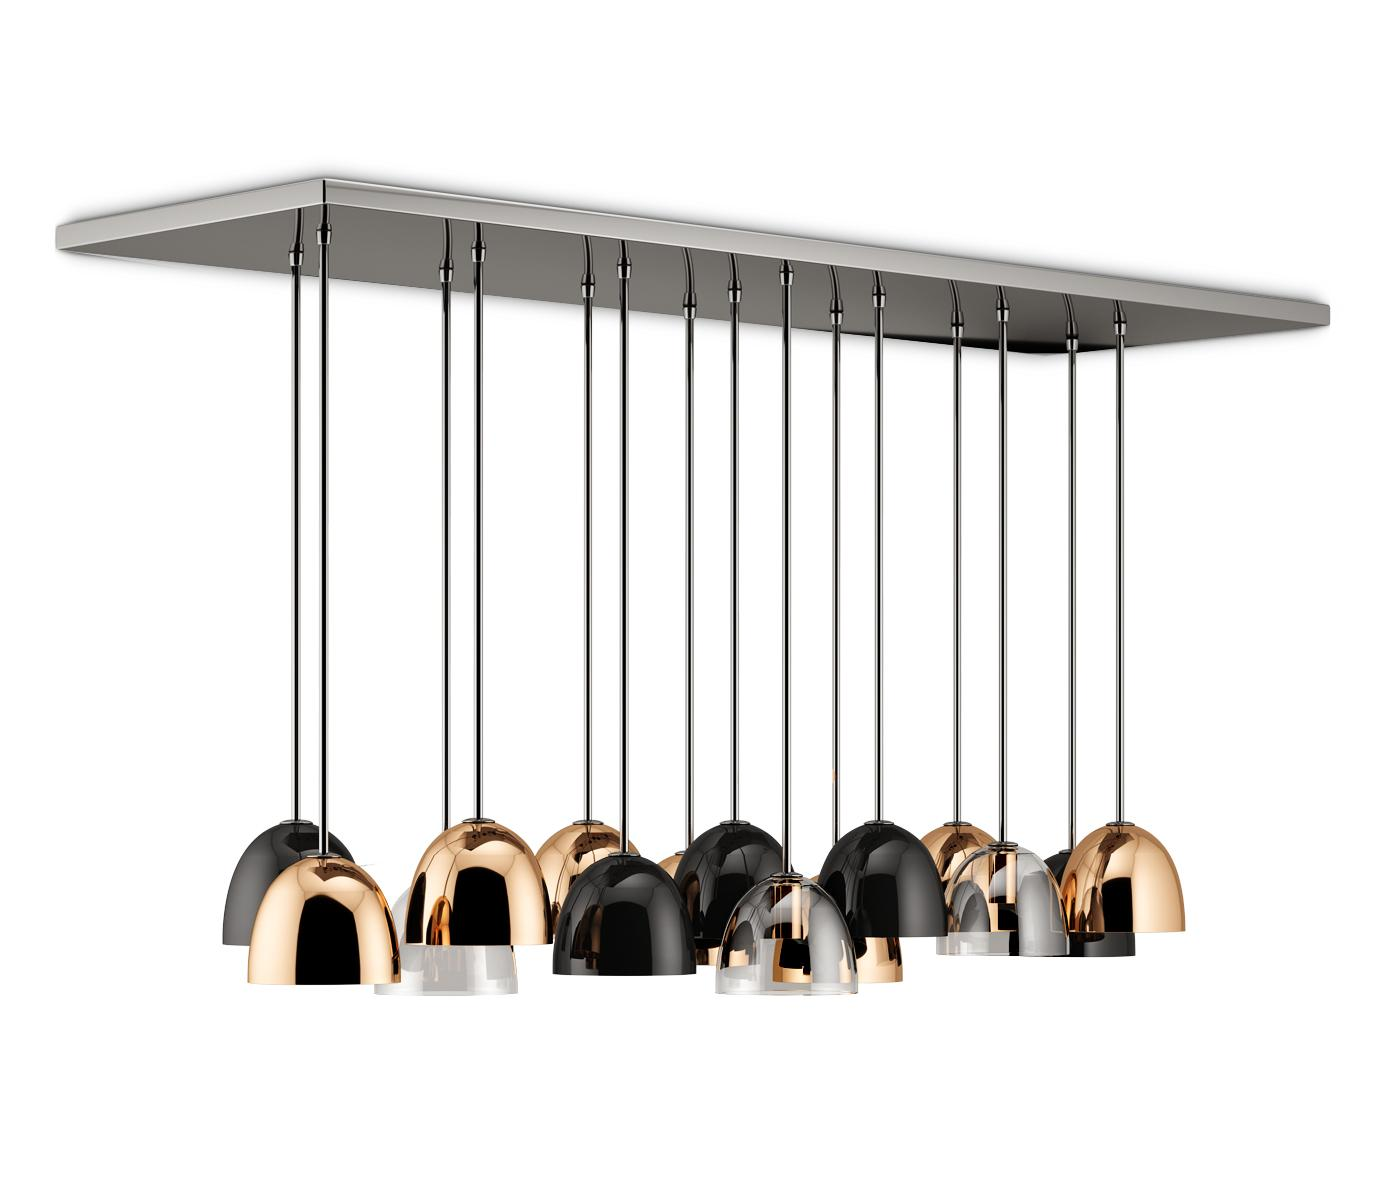 Bombarda Suspension Lamp